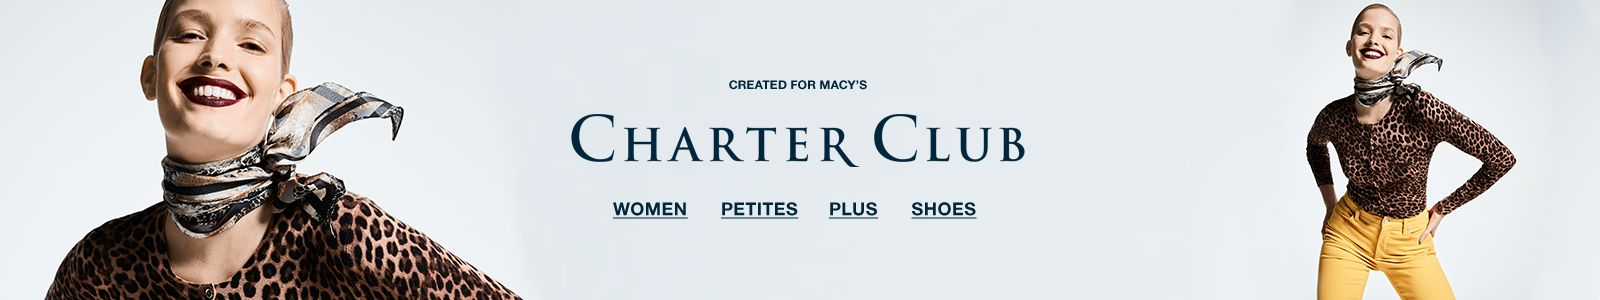 Created for May's, Charter Club, Women, Petites, Plus, Shoes